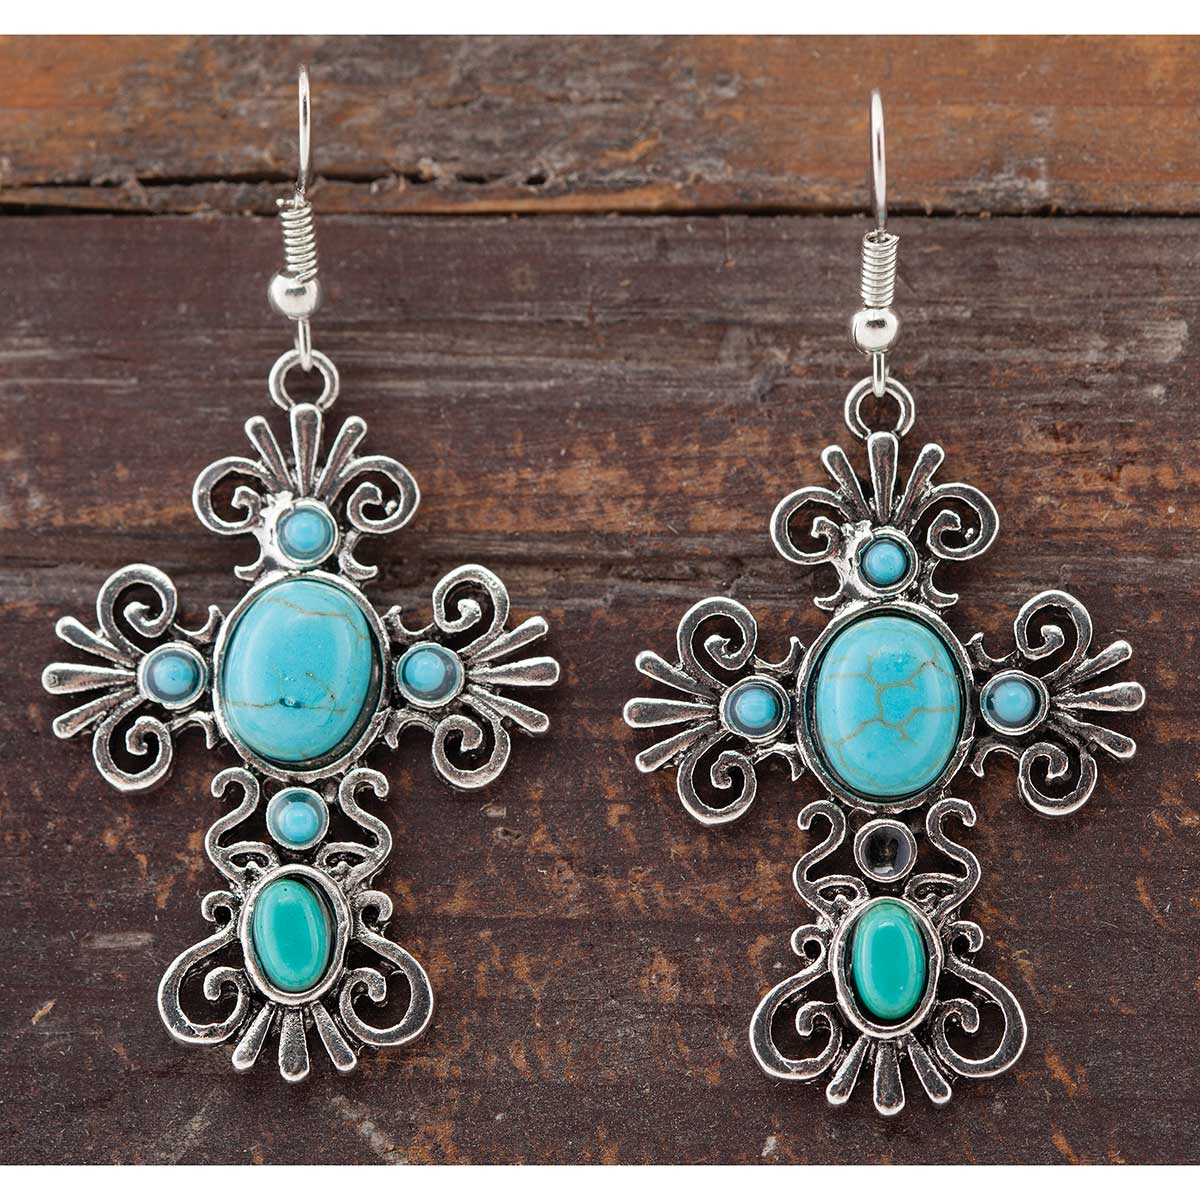 Antique Silver and Turquoise Cross French Wire Earrings